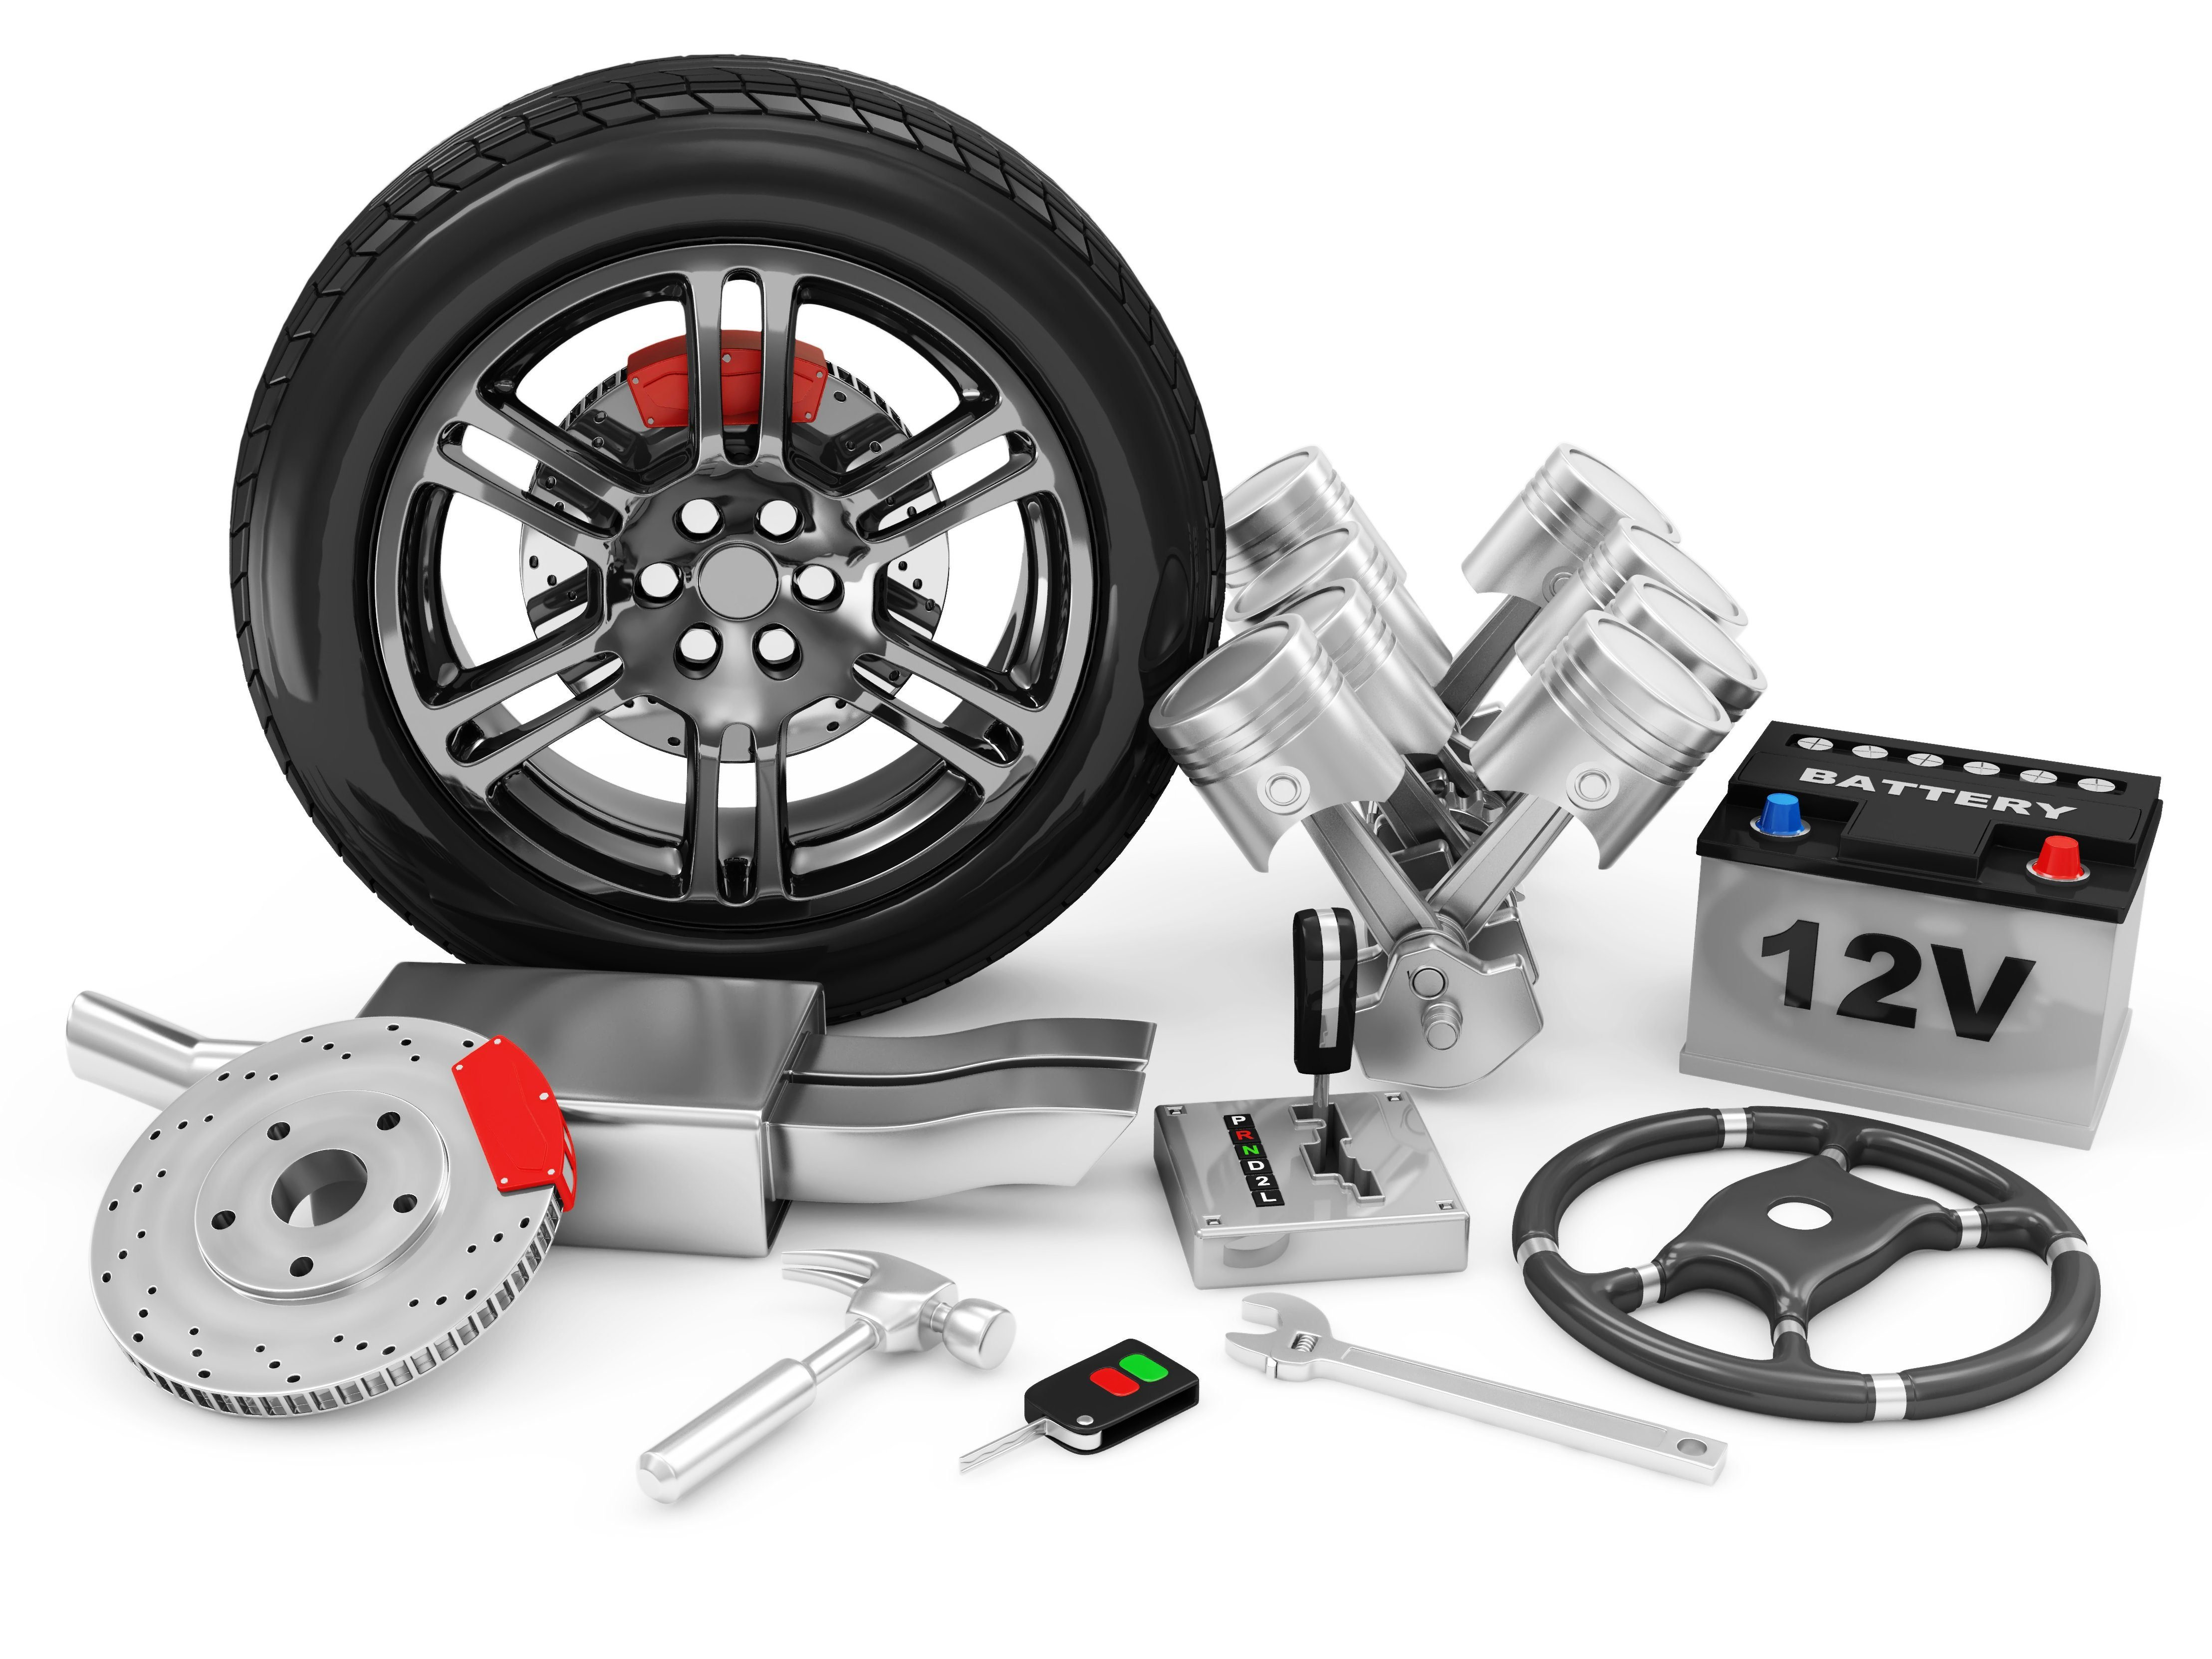 5. Double-Check the Price of New Auto Parts